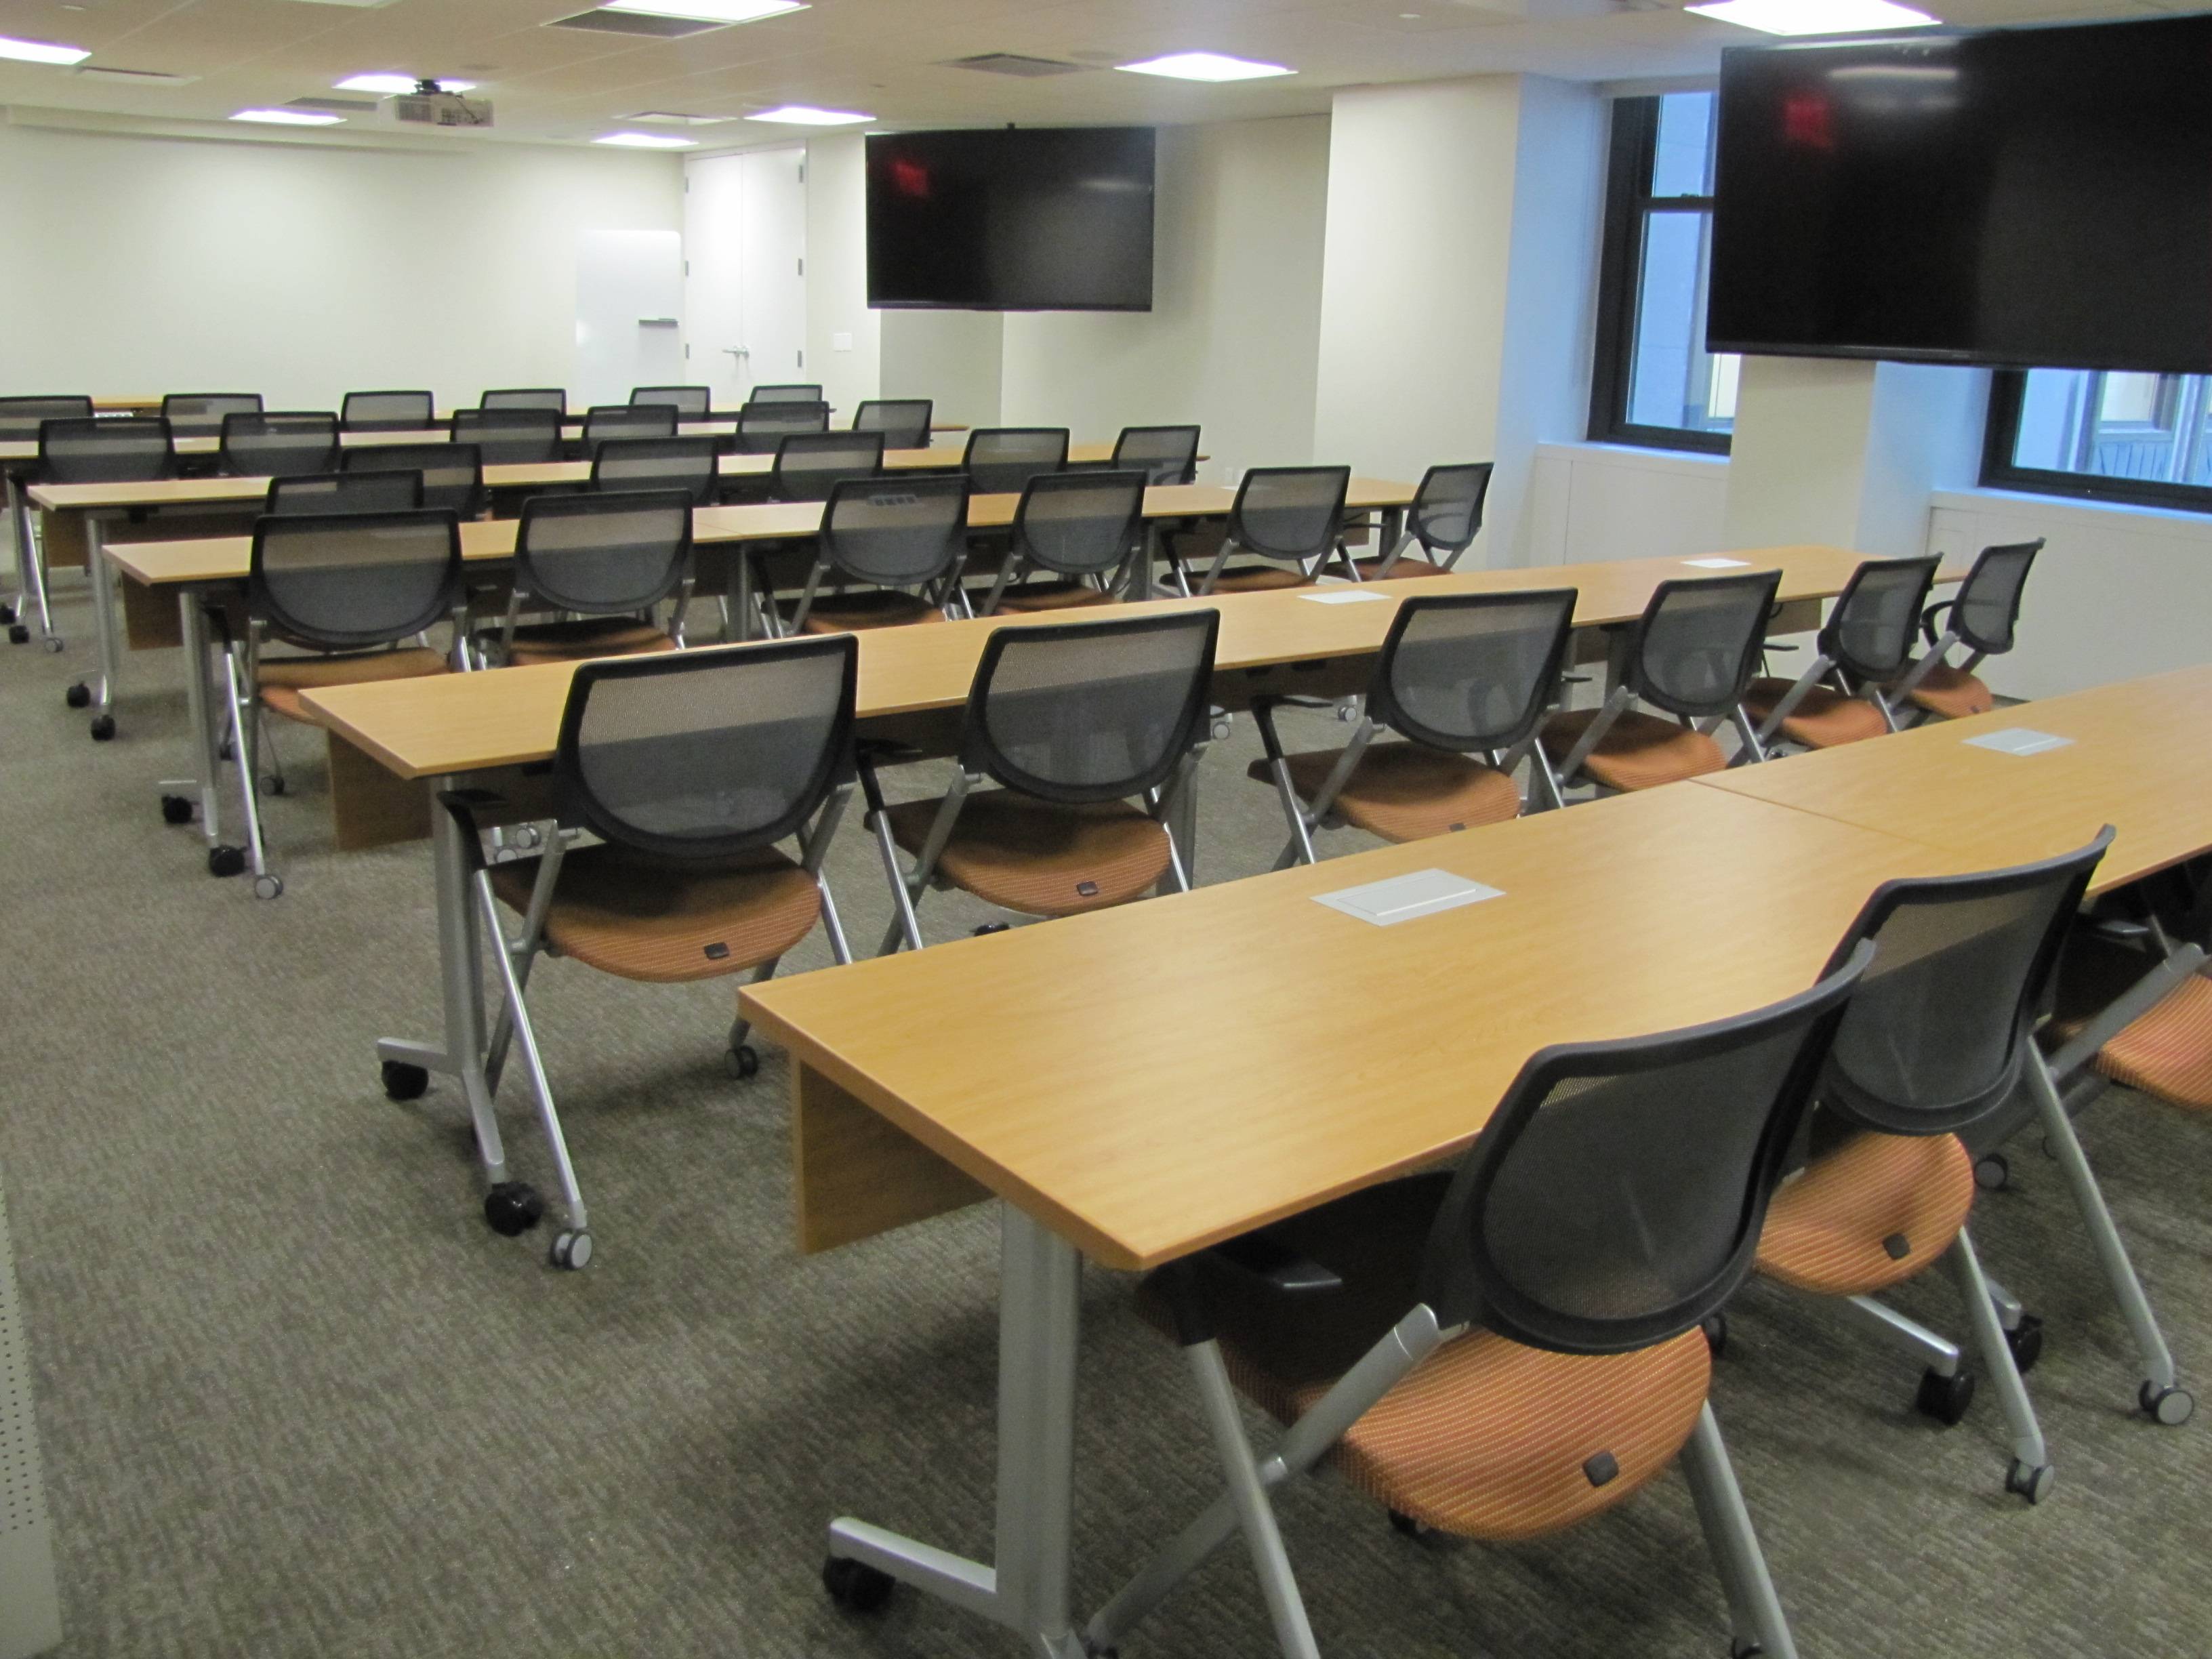 Large Conference Room with A/V, WiFi, Flexible Layout event space at NYSSCPA in New York City, NYC, NY/NJ Area